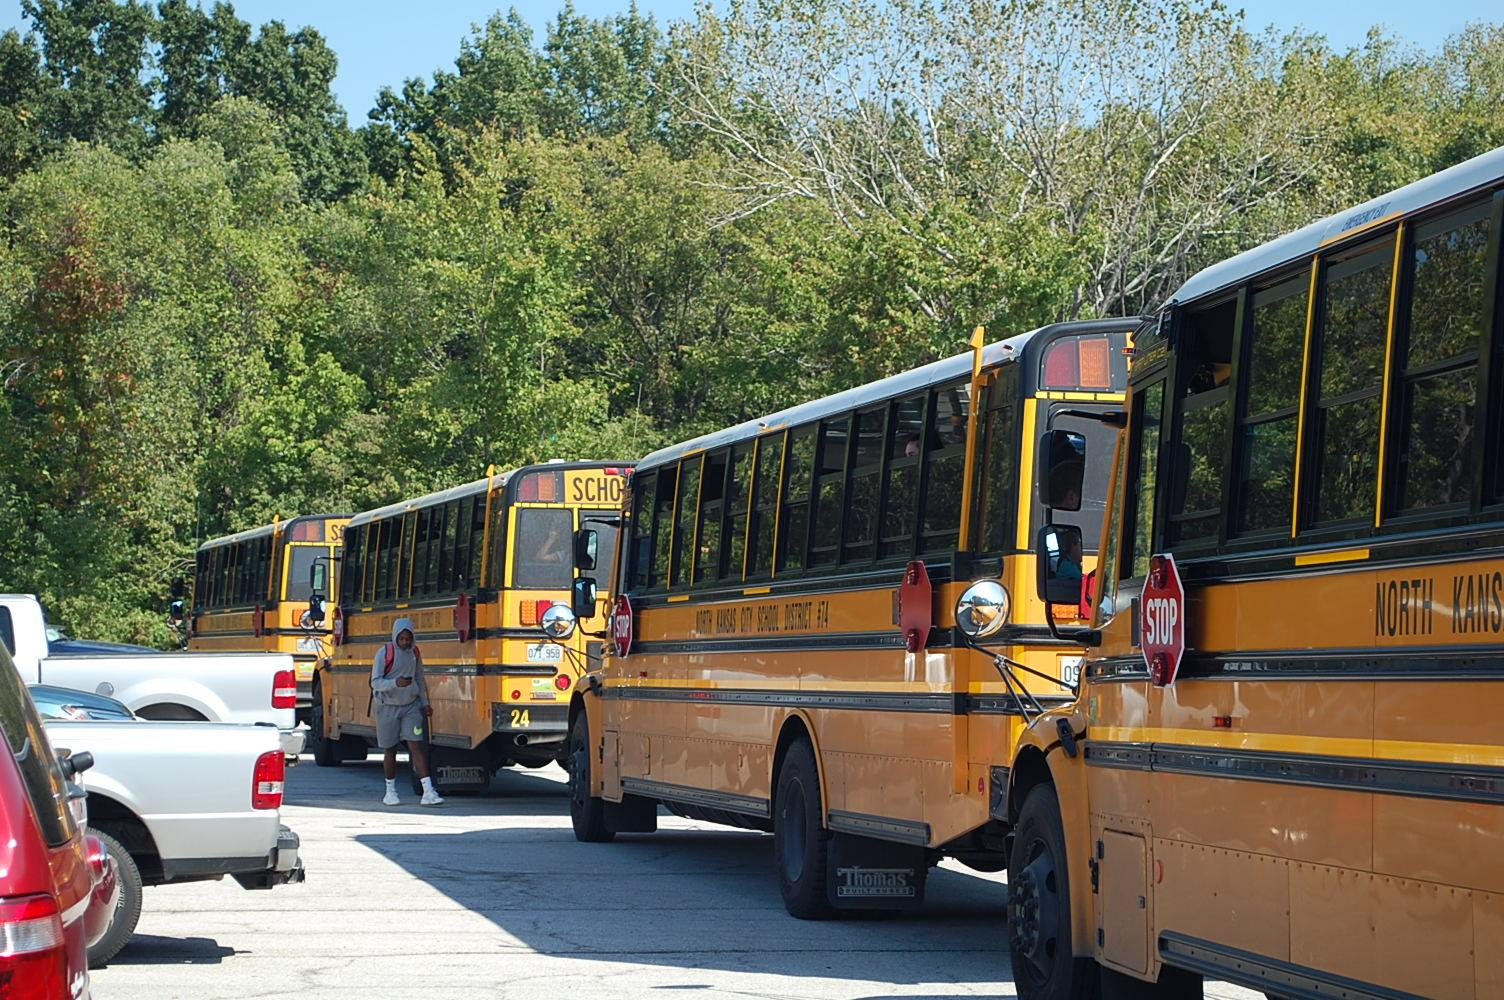 The buses are lined up for dismissal ready to take students home on Sept. 27.